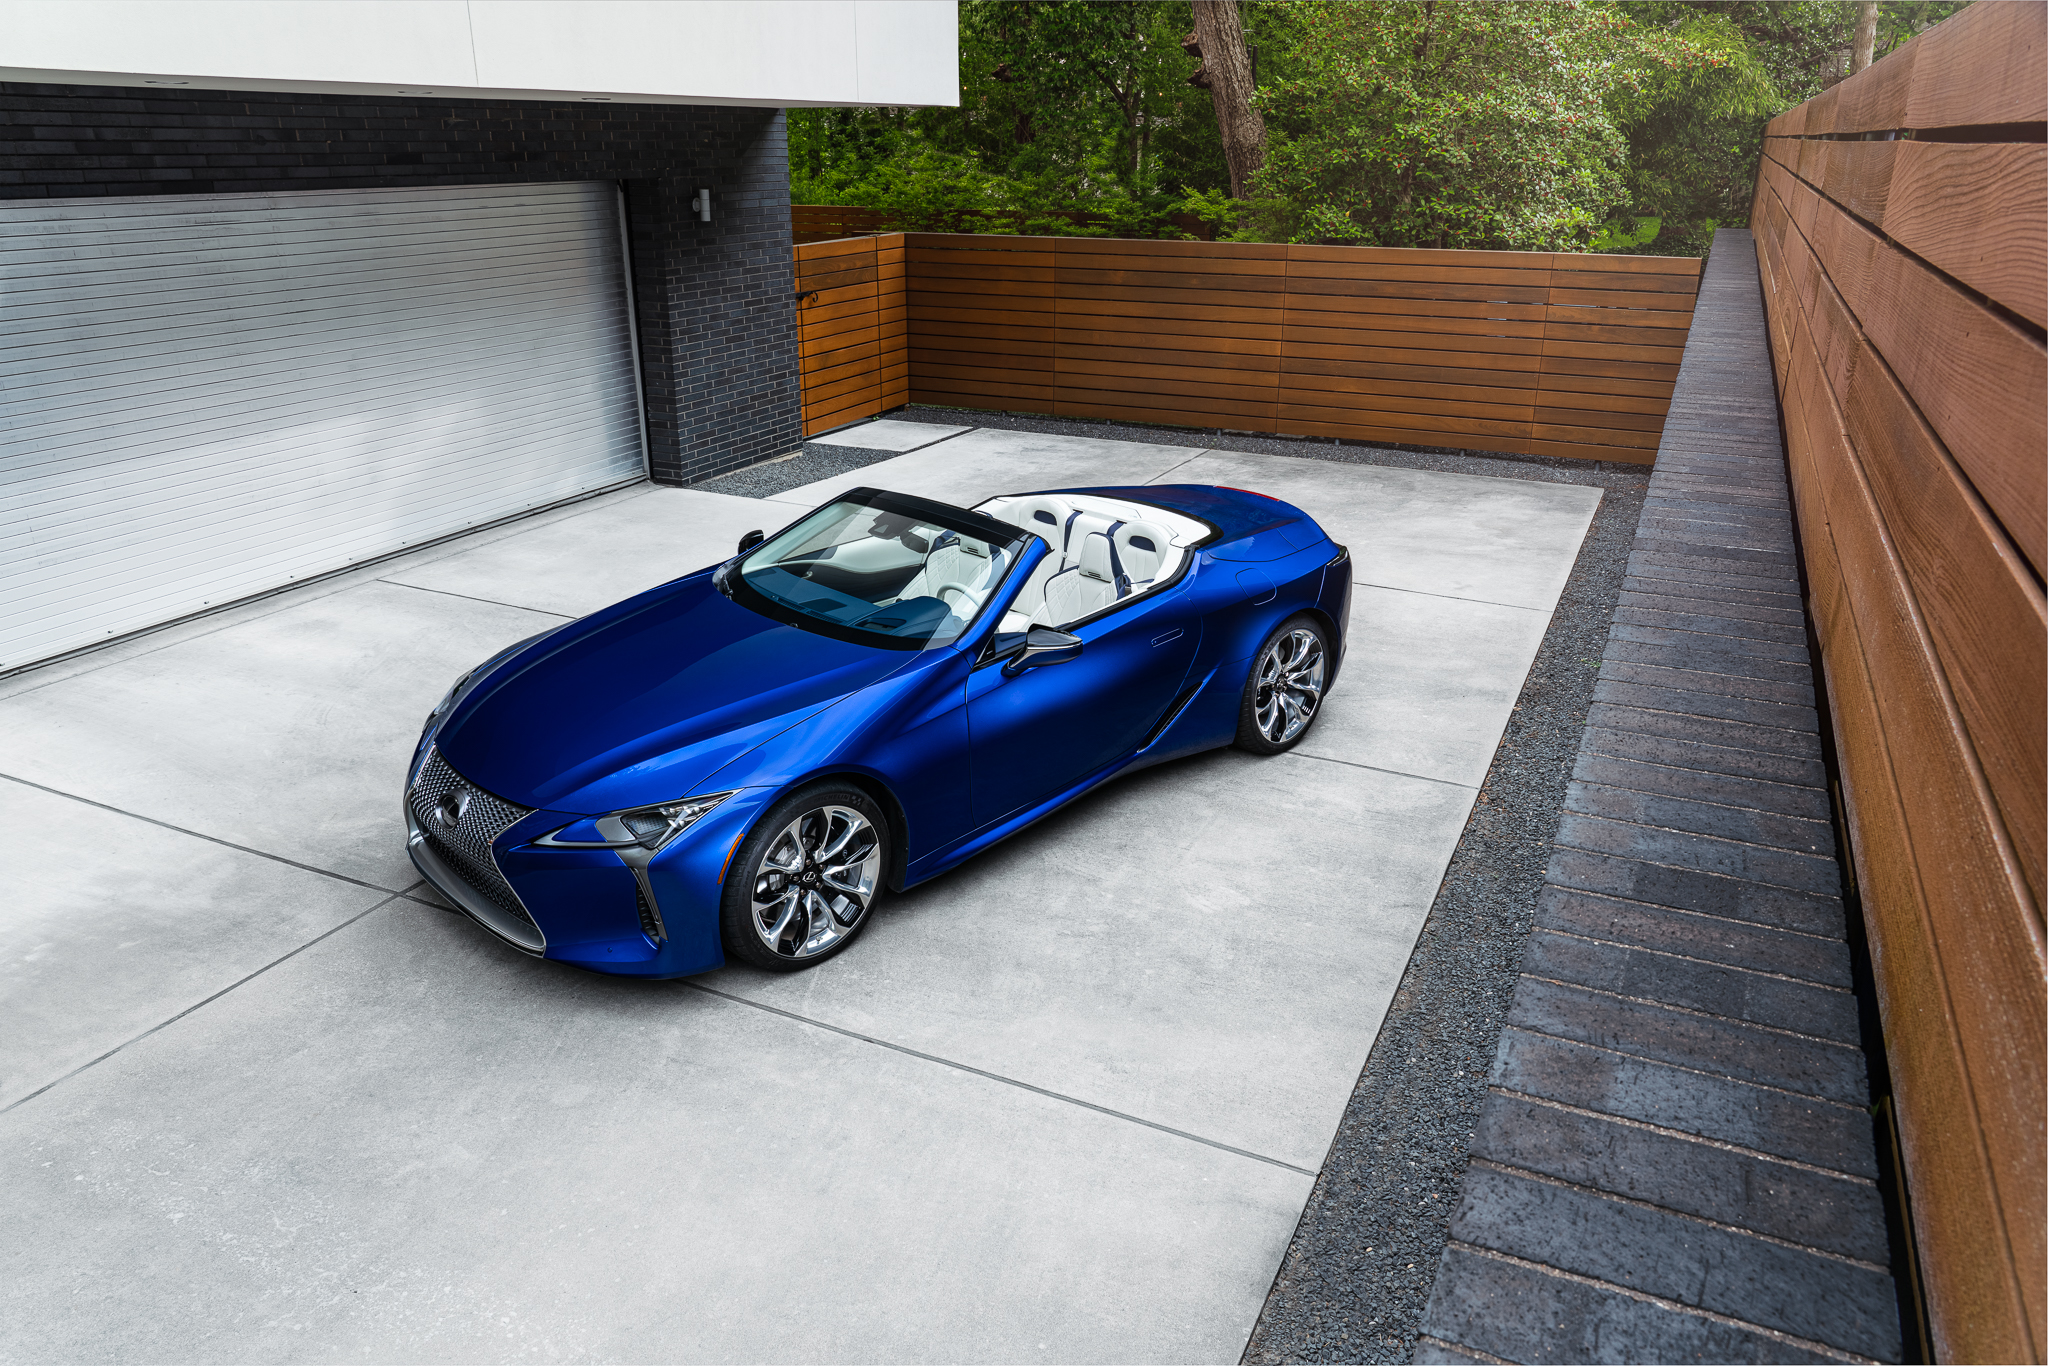 Design insights of the Lexus LC 500 Convertible